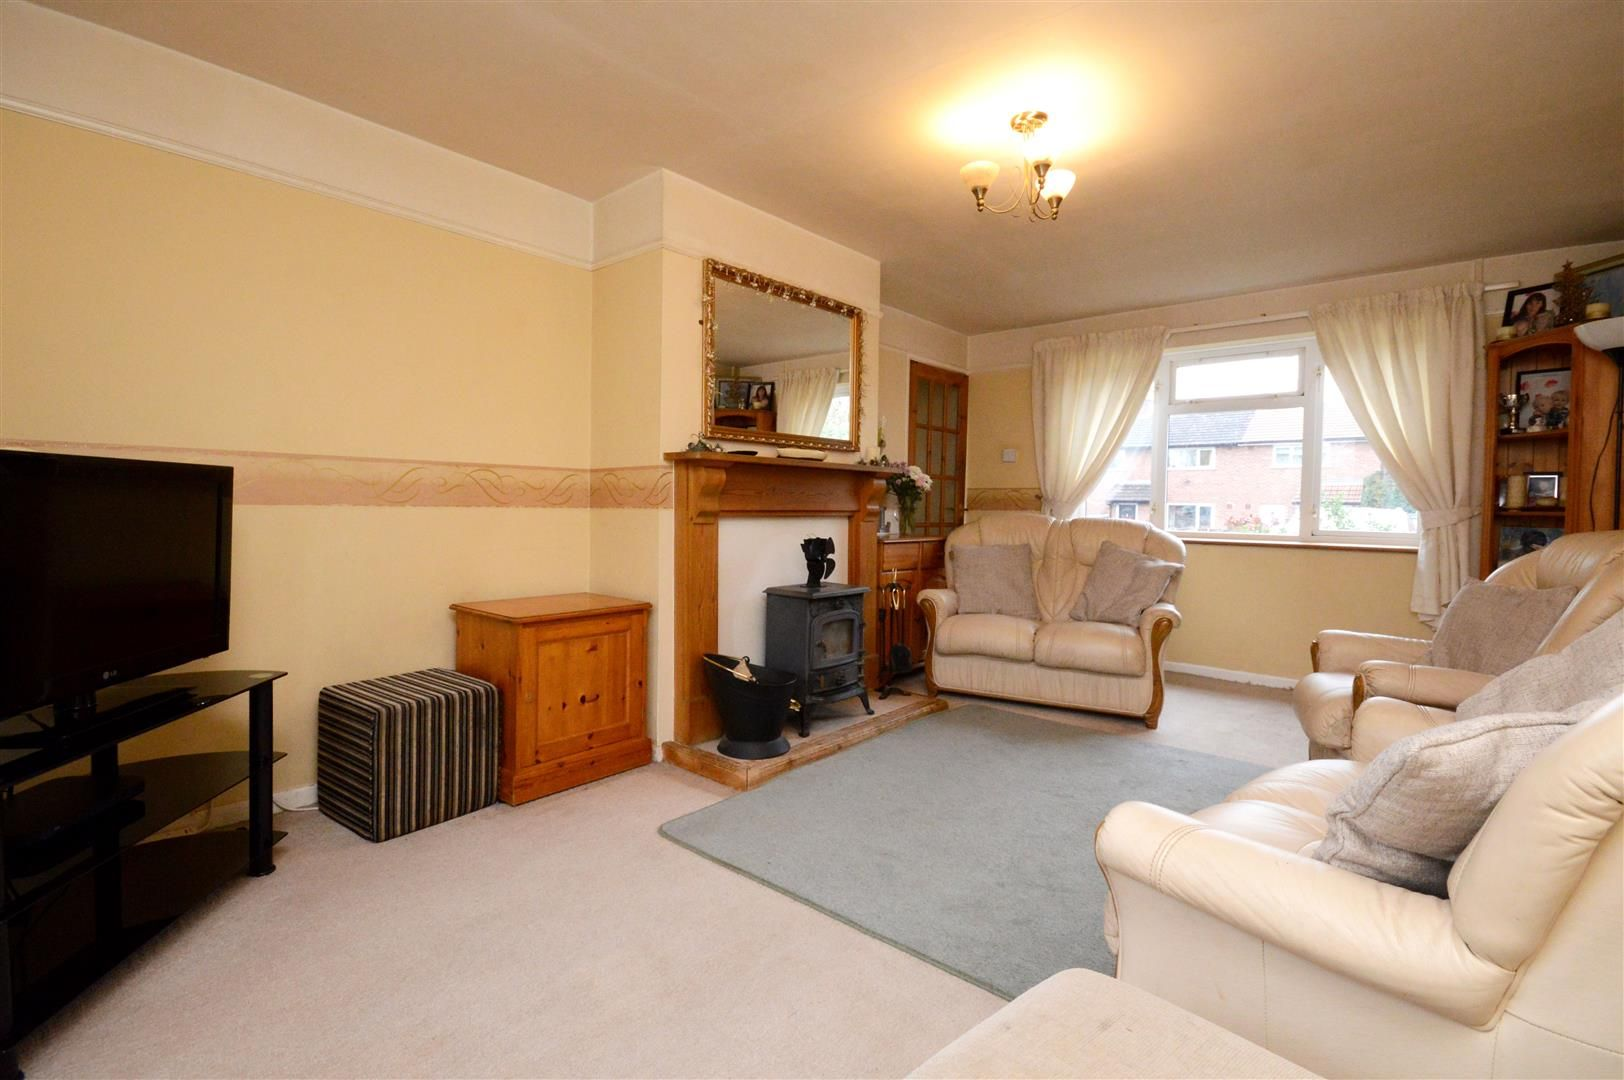 3 bed terraced for sale in Weobley  - Property Image 4